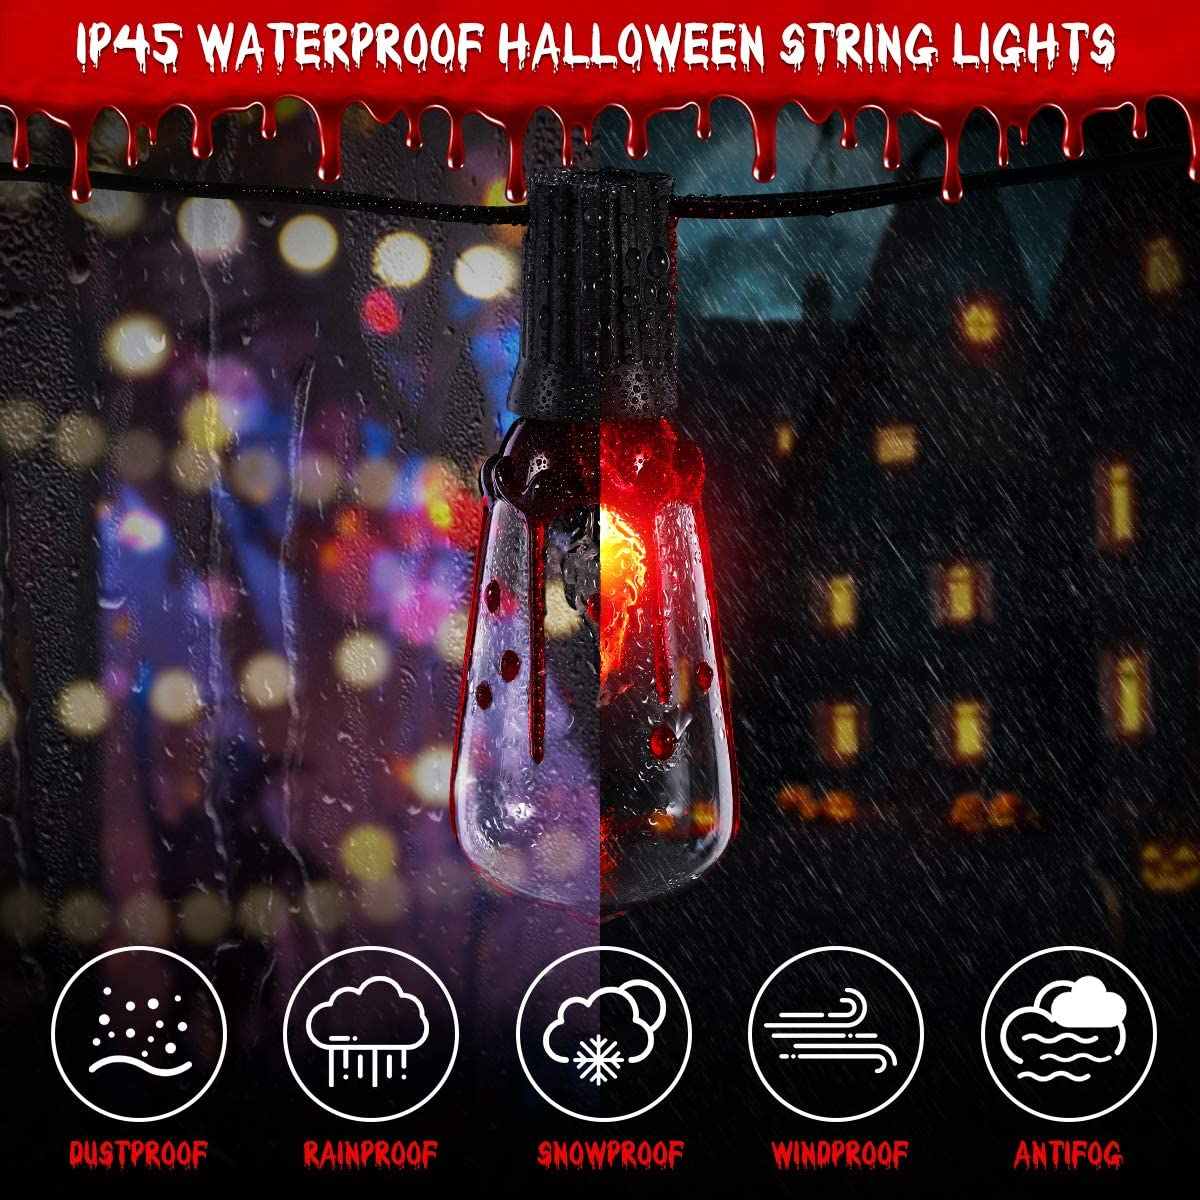 Halloween String Lights, 15.7FT Halloween Decorative Sting String Lights Waterproof Hanging String Lights for Halloween Decoration